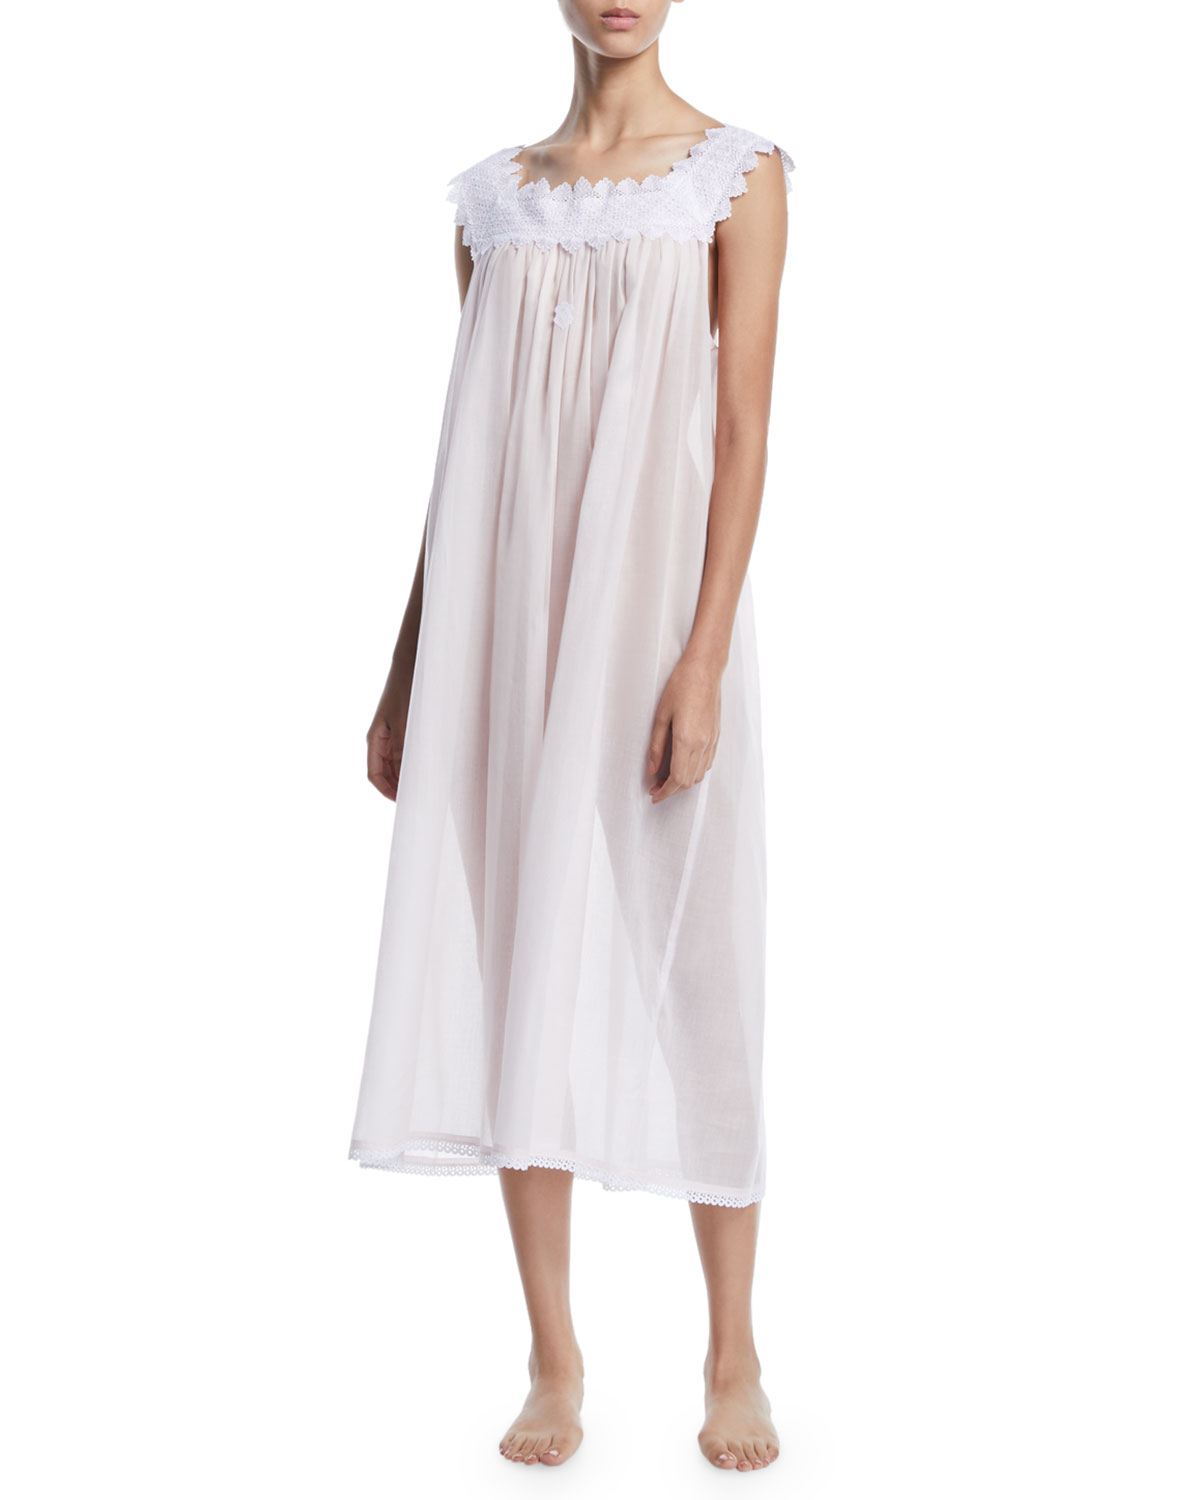 CELESTINE Ninifee Lace-Trim Sleeveless Nightgown in Pink